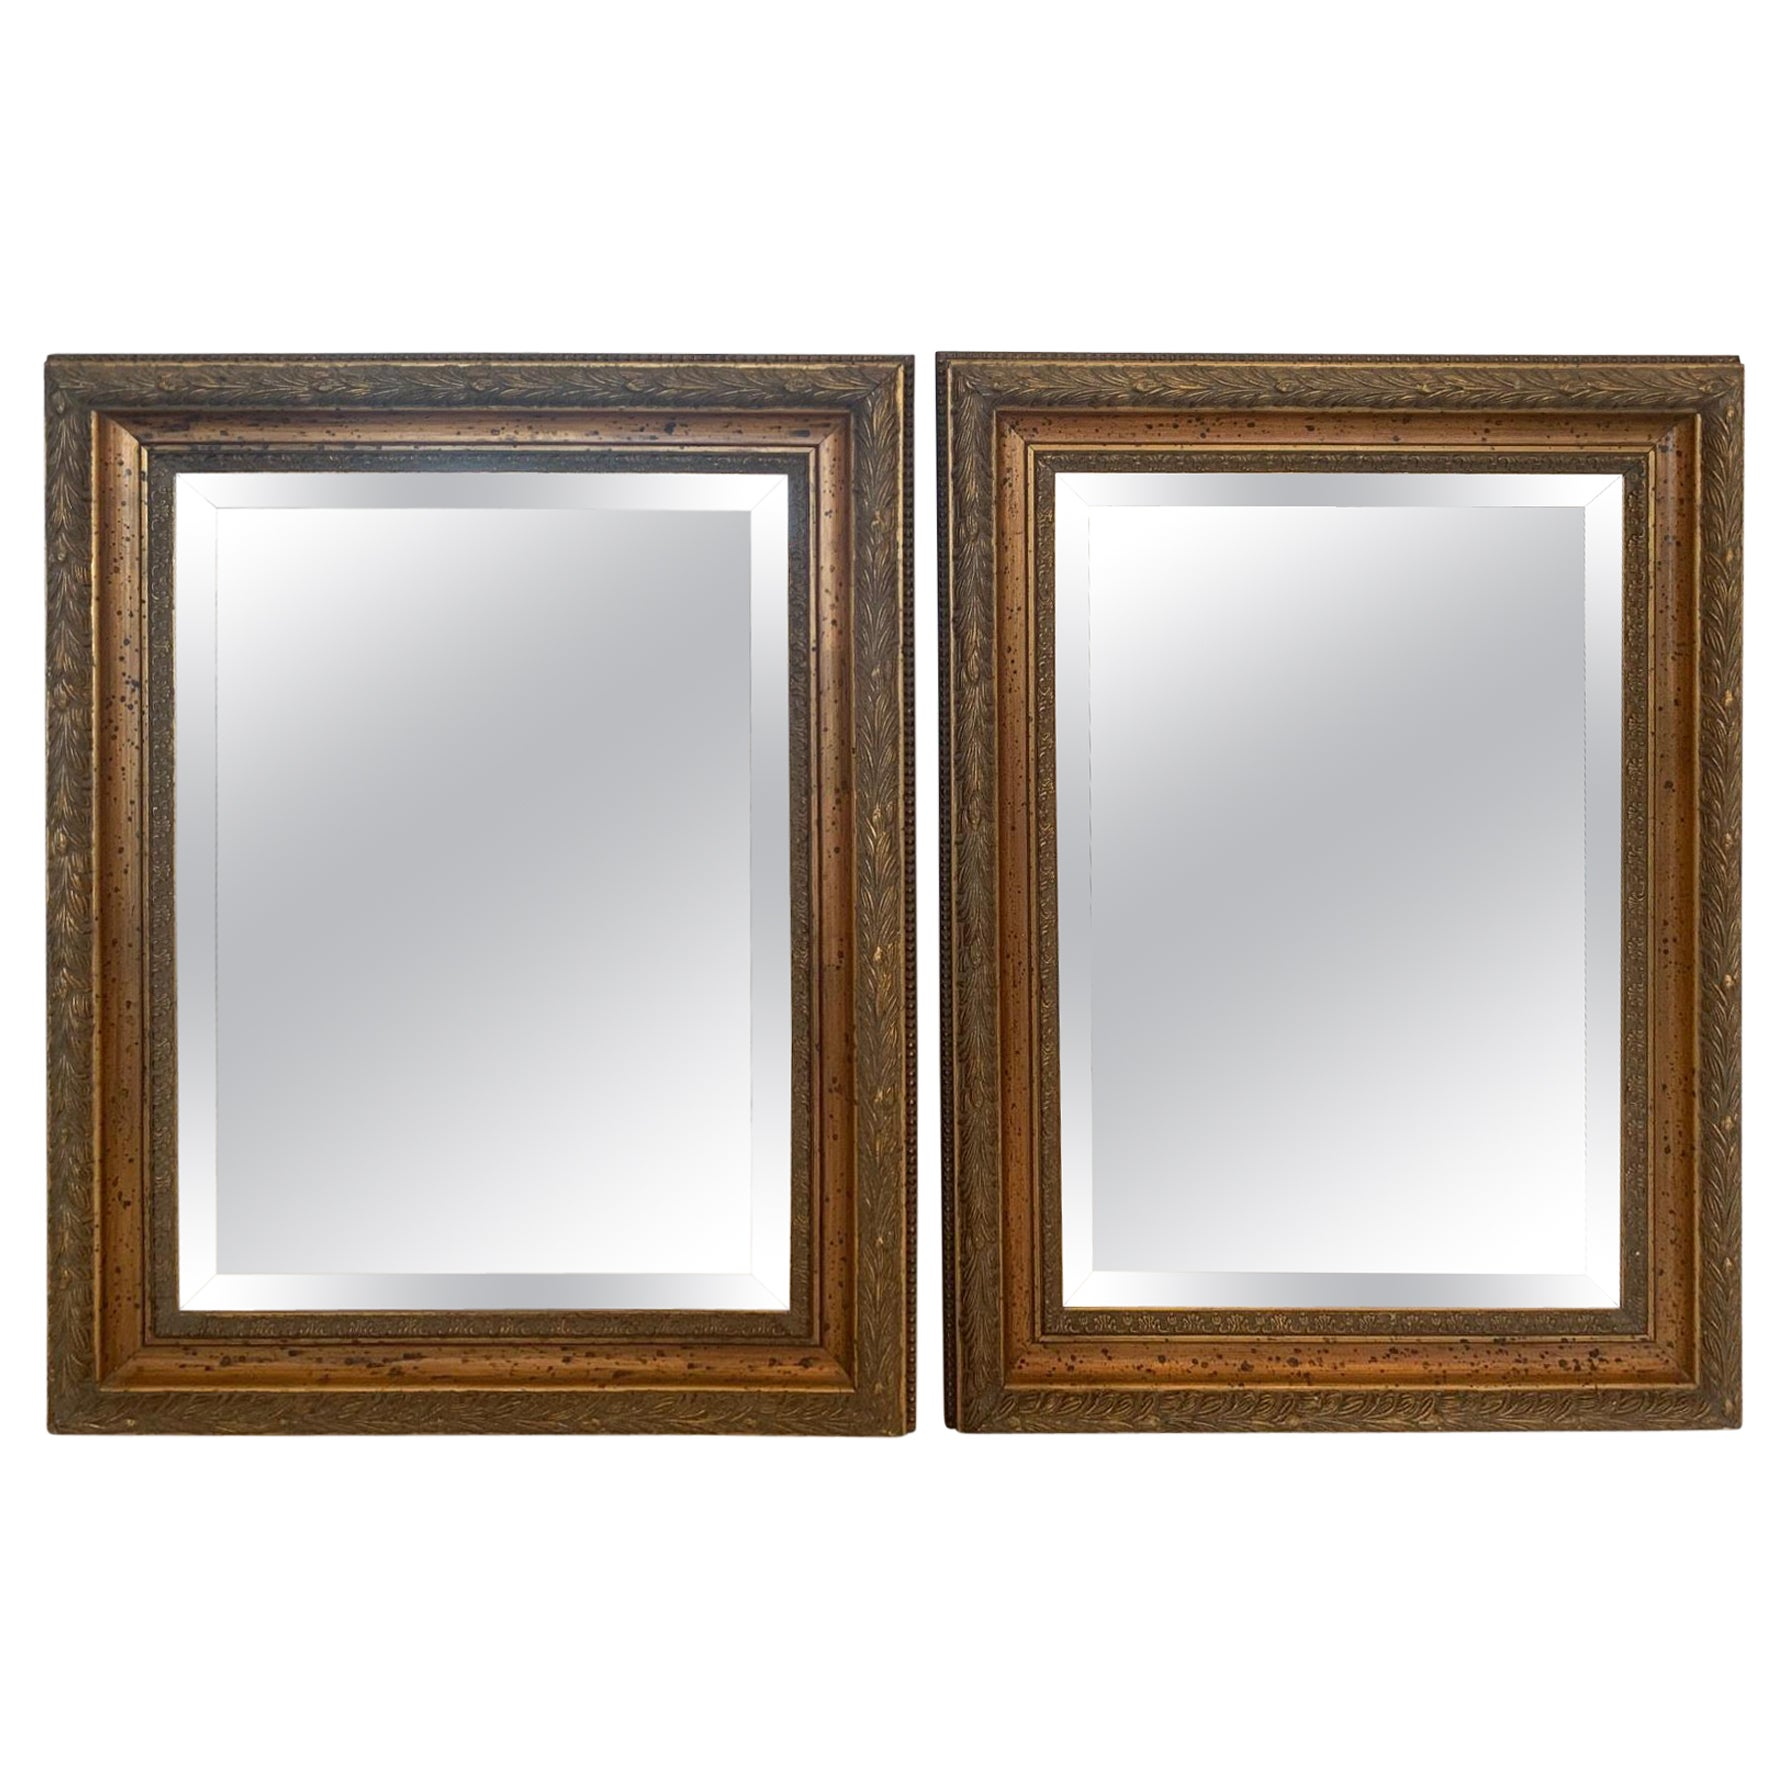 Classic Pair of Giltwood Rectangular Bevelled Mirrors